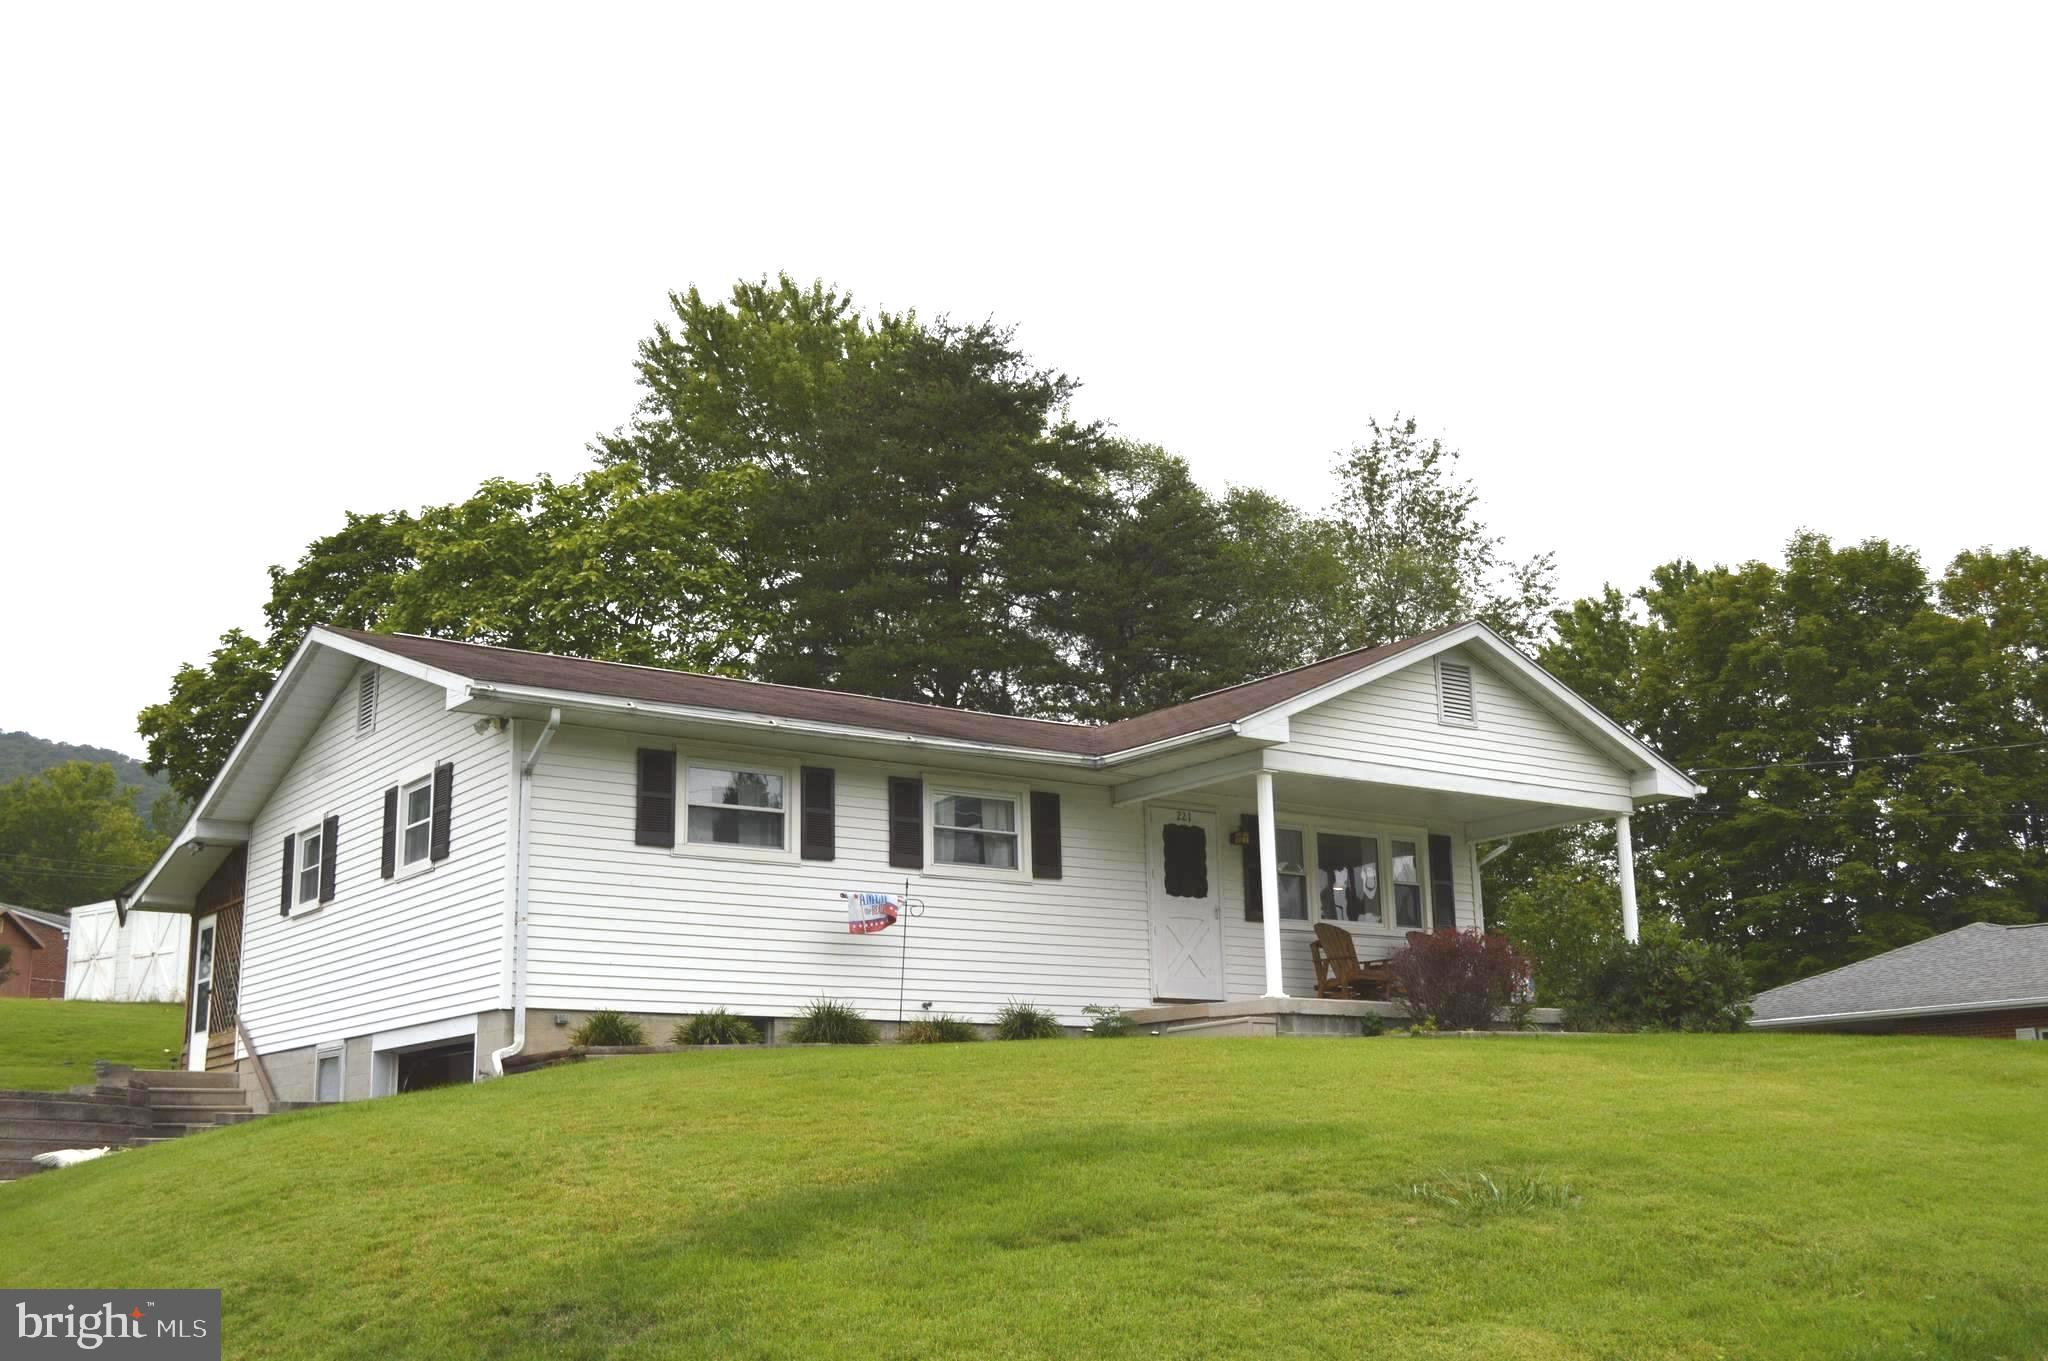 221 Garfield, Ridgeley, WV 26753